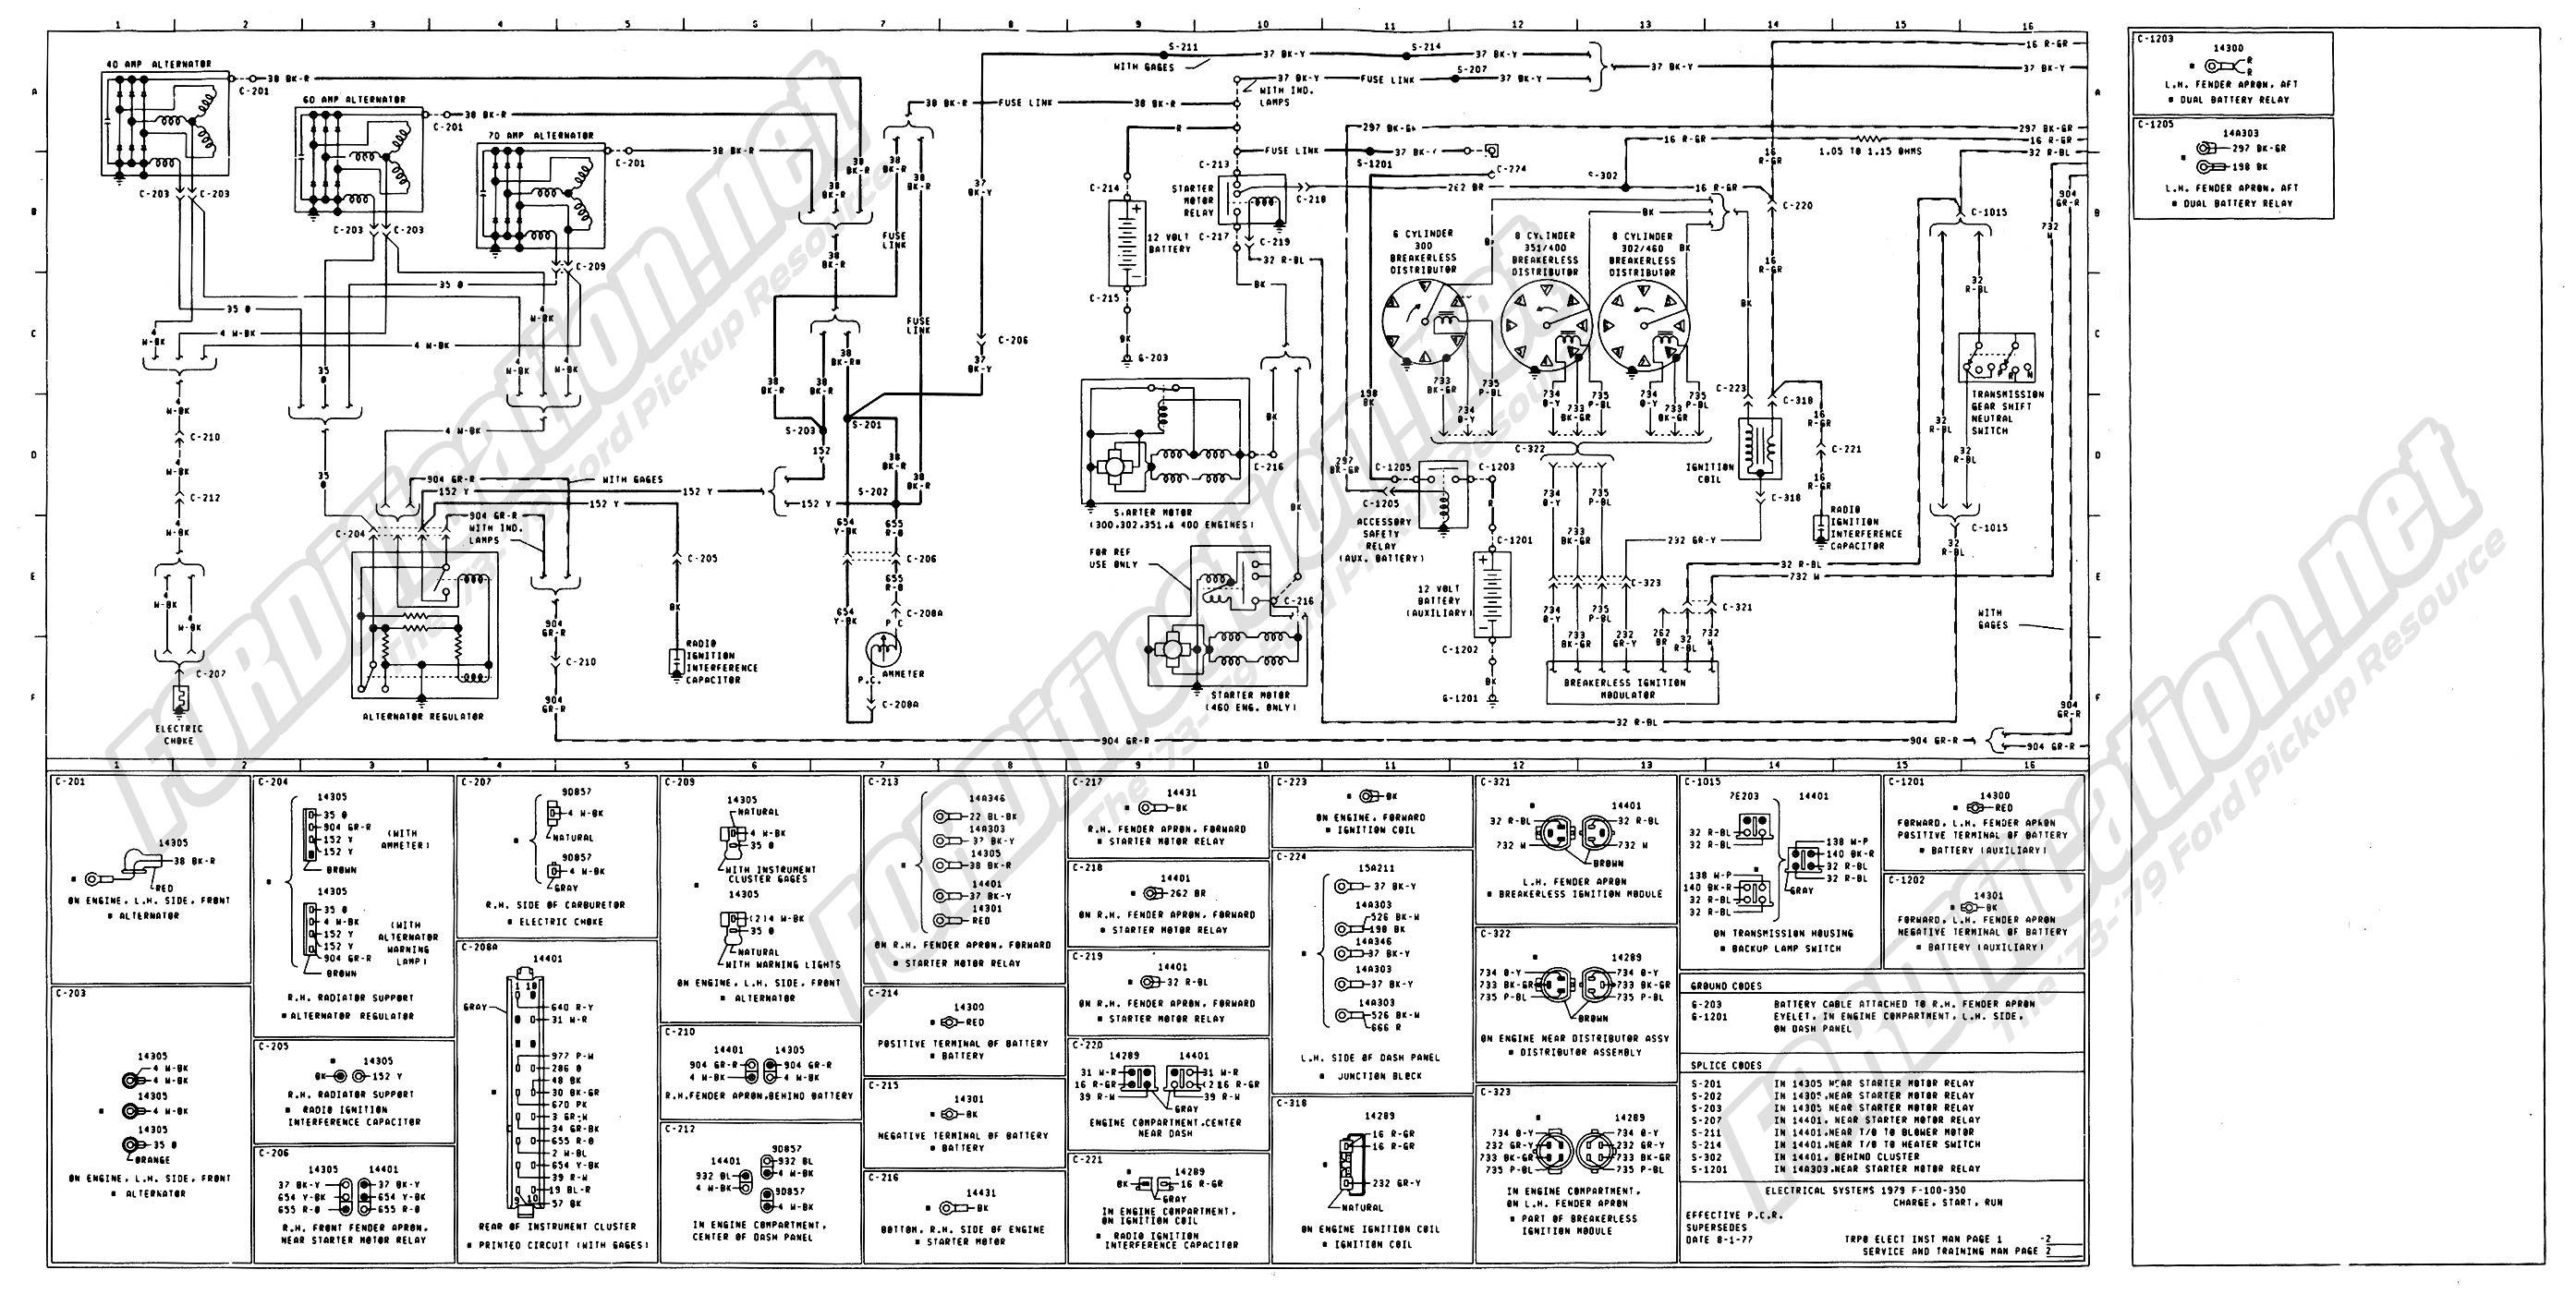 1973 1979 ford truck wiring diagrams schematics fordification net rh fordification net Ford Truck Wiring Diagrams Ford E-450 Wiring-Diagram